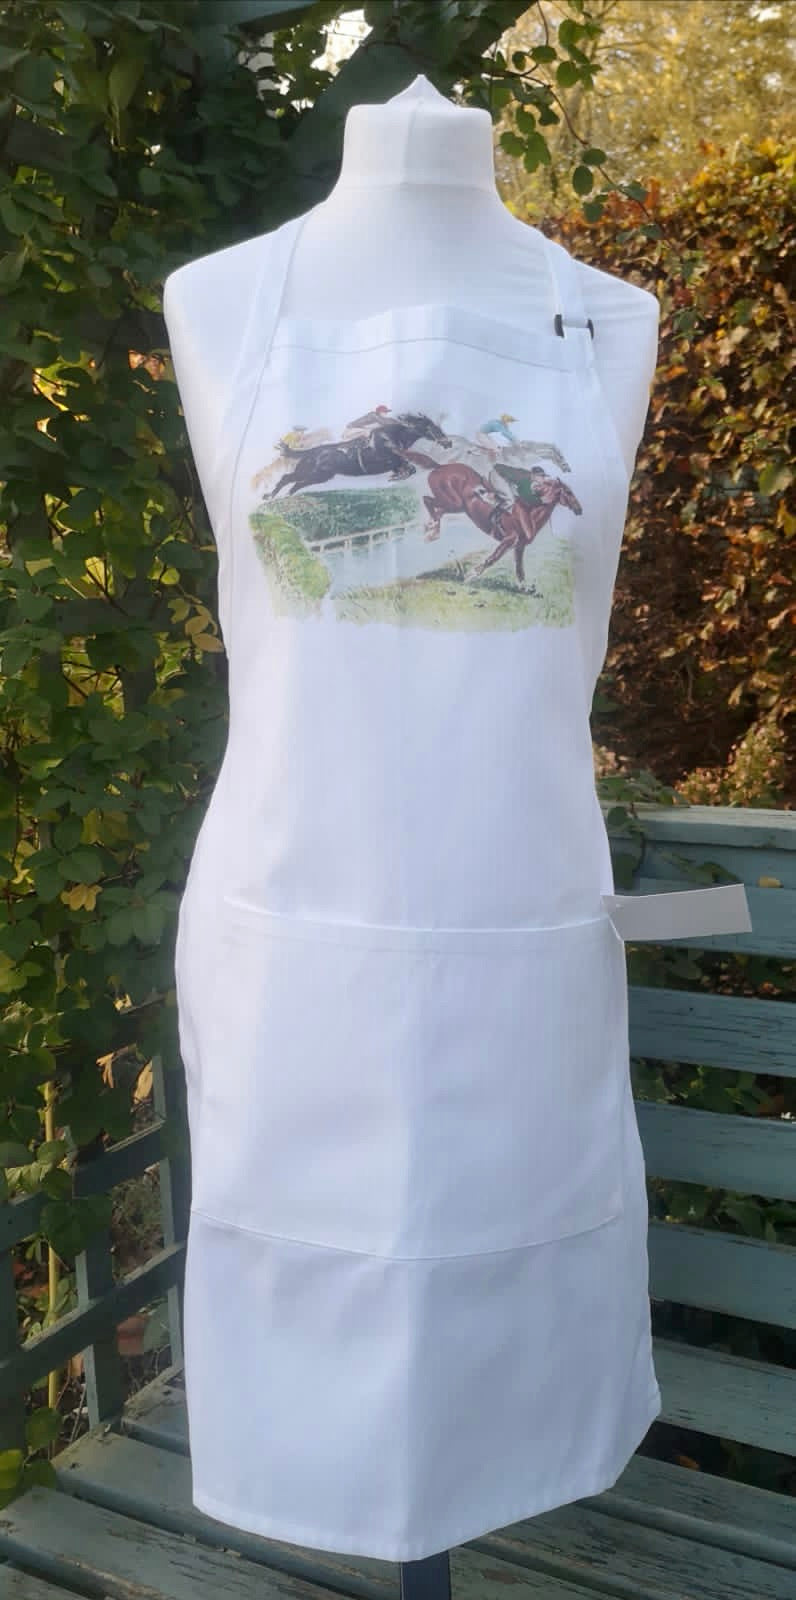 Ox Bow Decor Over the Fence Apron